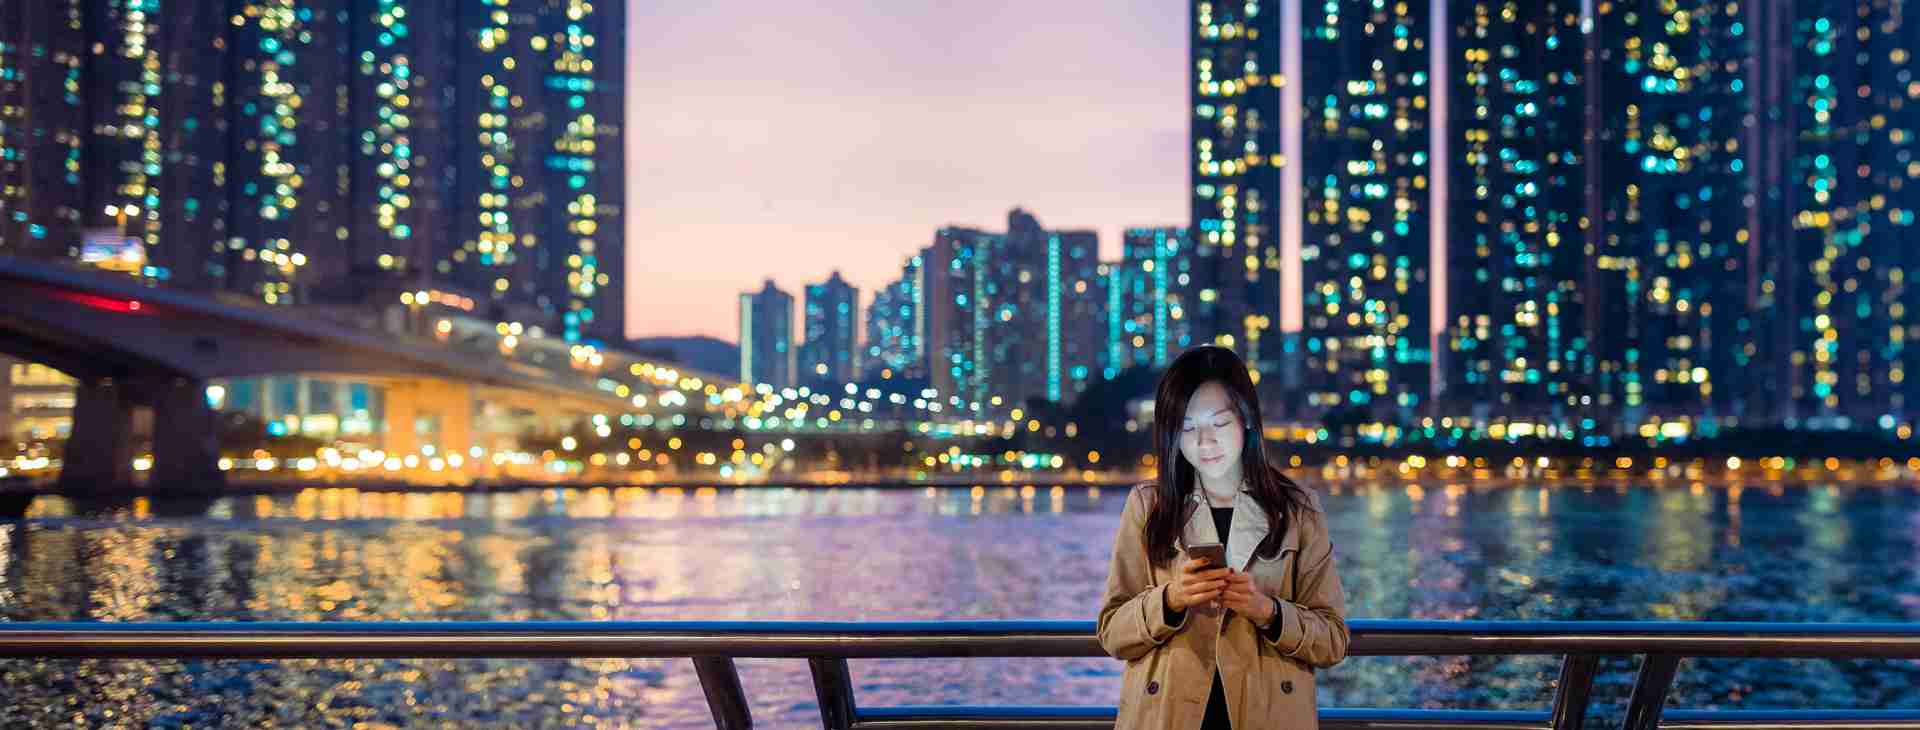 young asian woman on bridge at night looking at phone with skyscrapers behind her